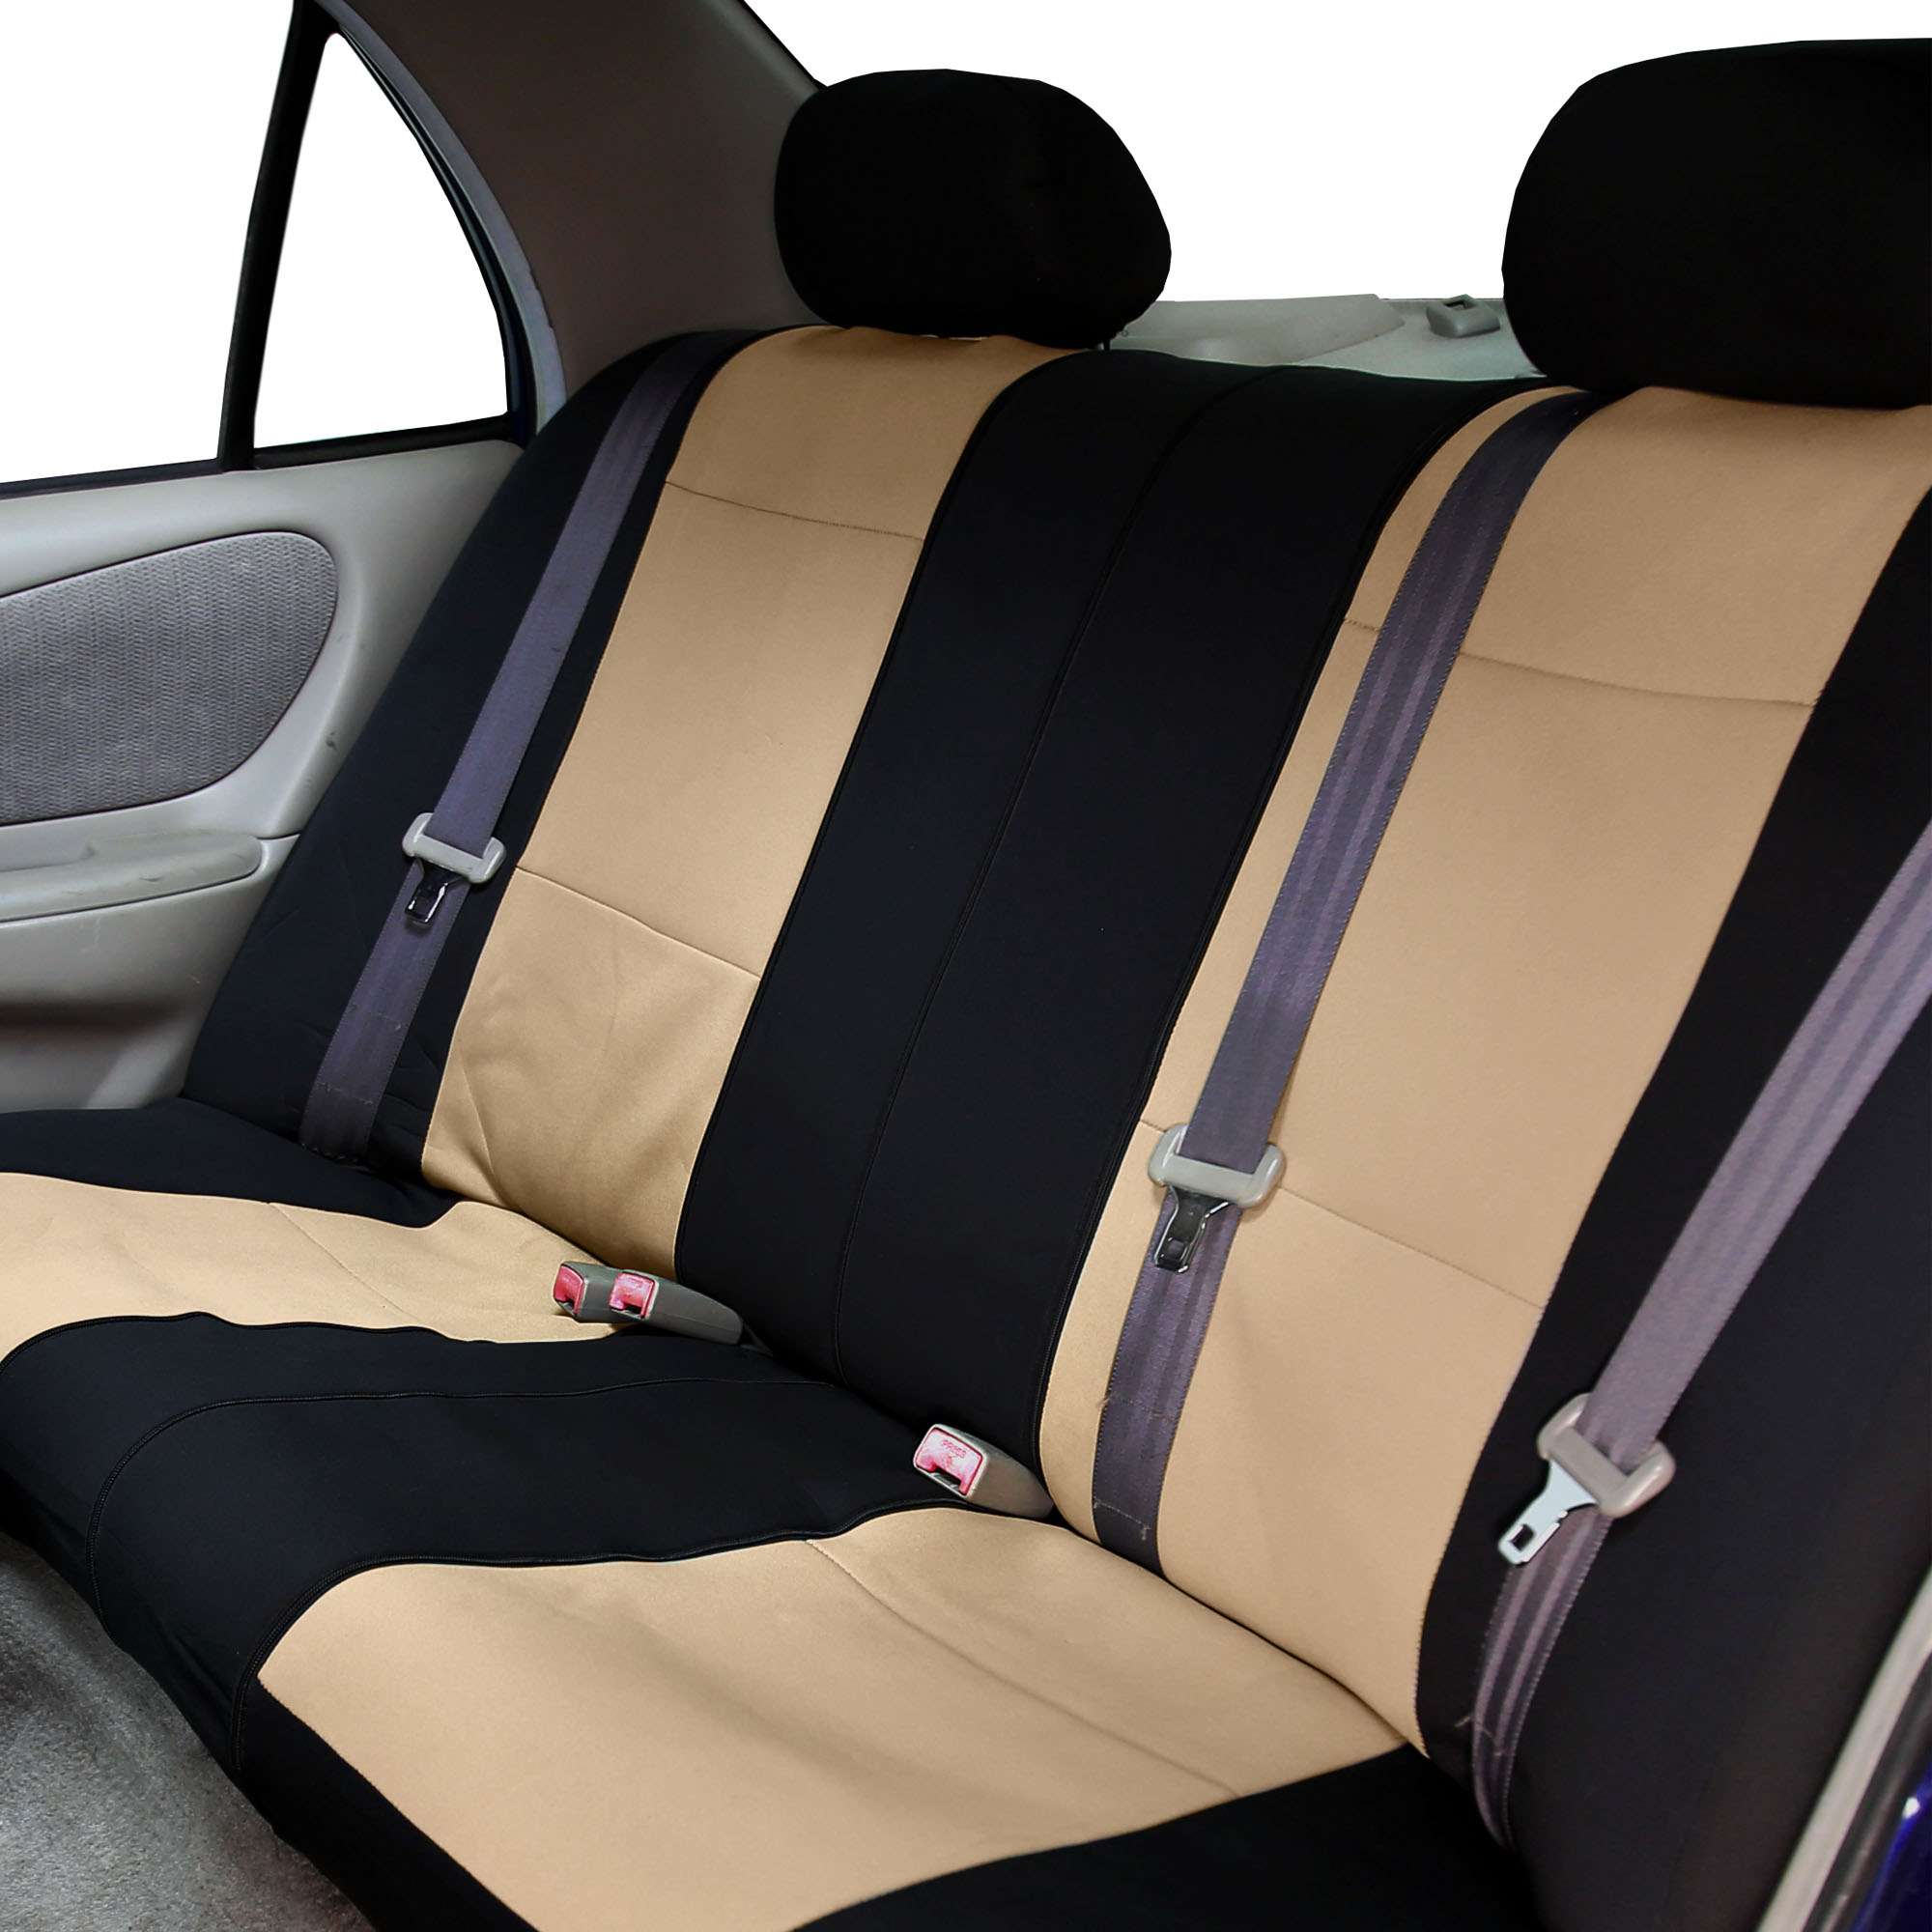 Car-Seat-Cover-Neoprene-Waterproof-Pet-Proof-Full-Set-Cover-With-Dash-Pad thumbnail 6